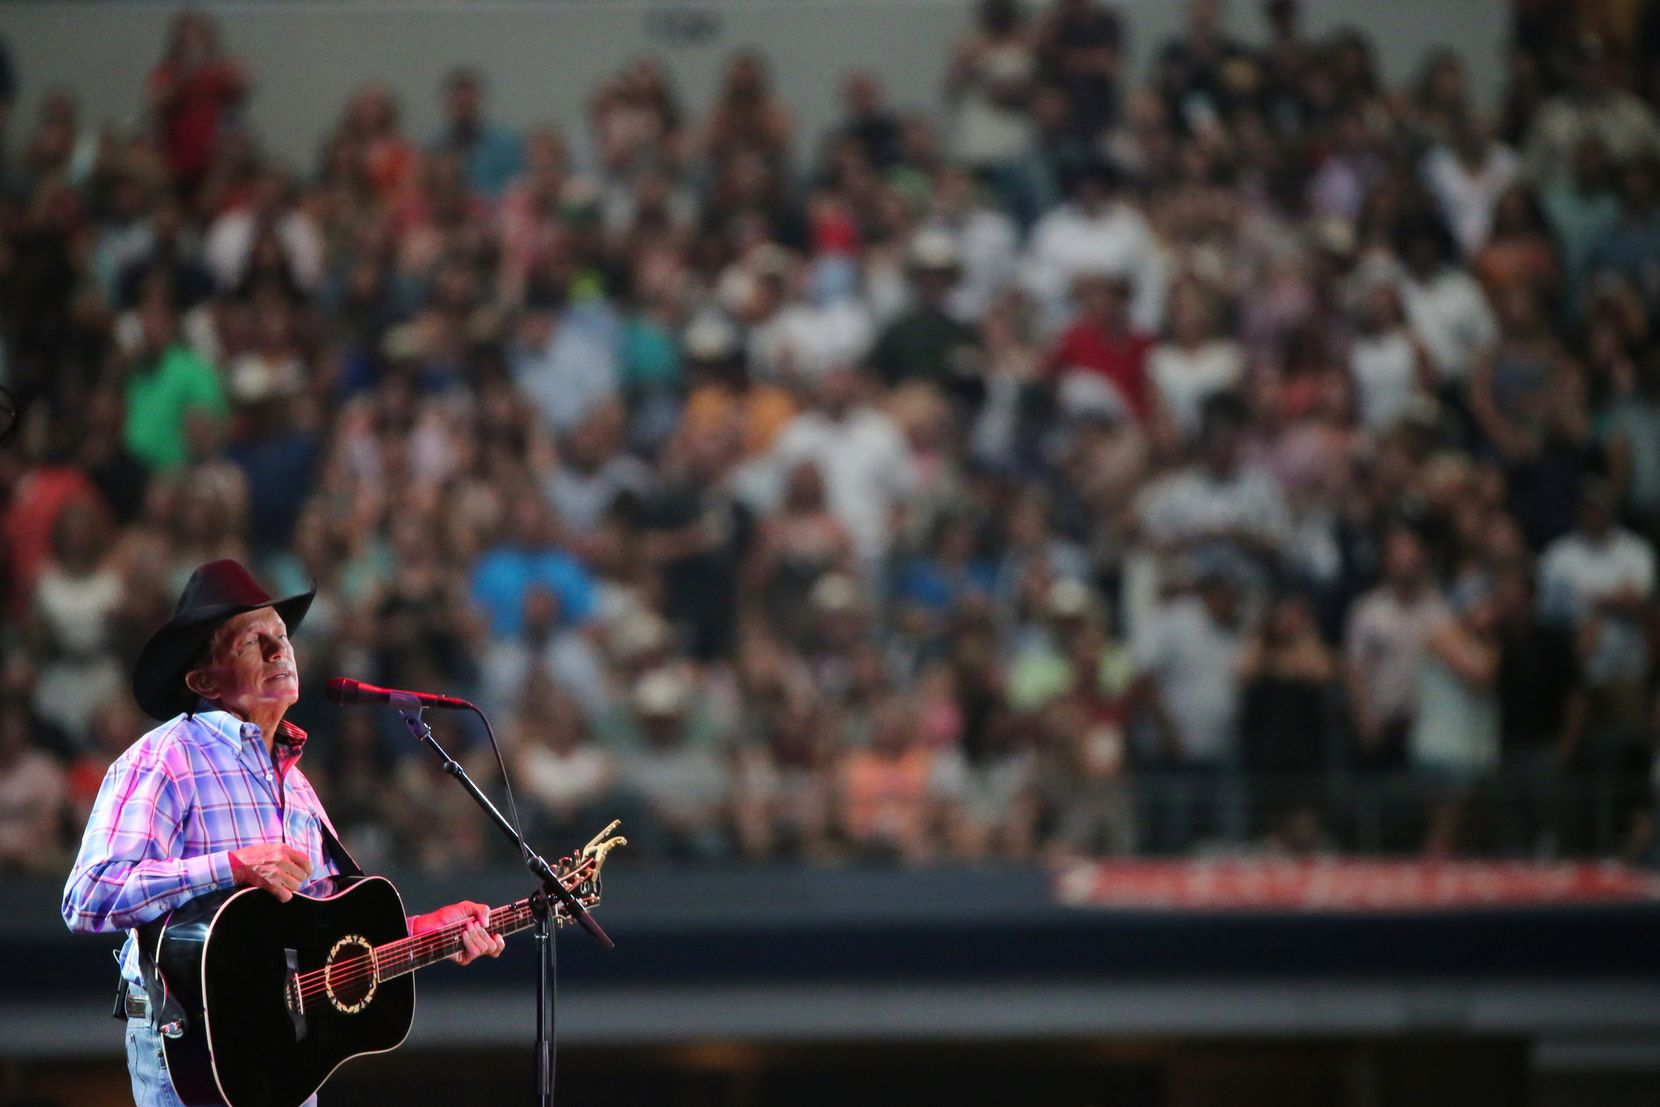 George Strait plays the last show of what was billed as his final tour at AT&T Stadium in Arlington, Texas on June 7, 2014.